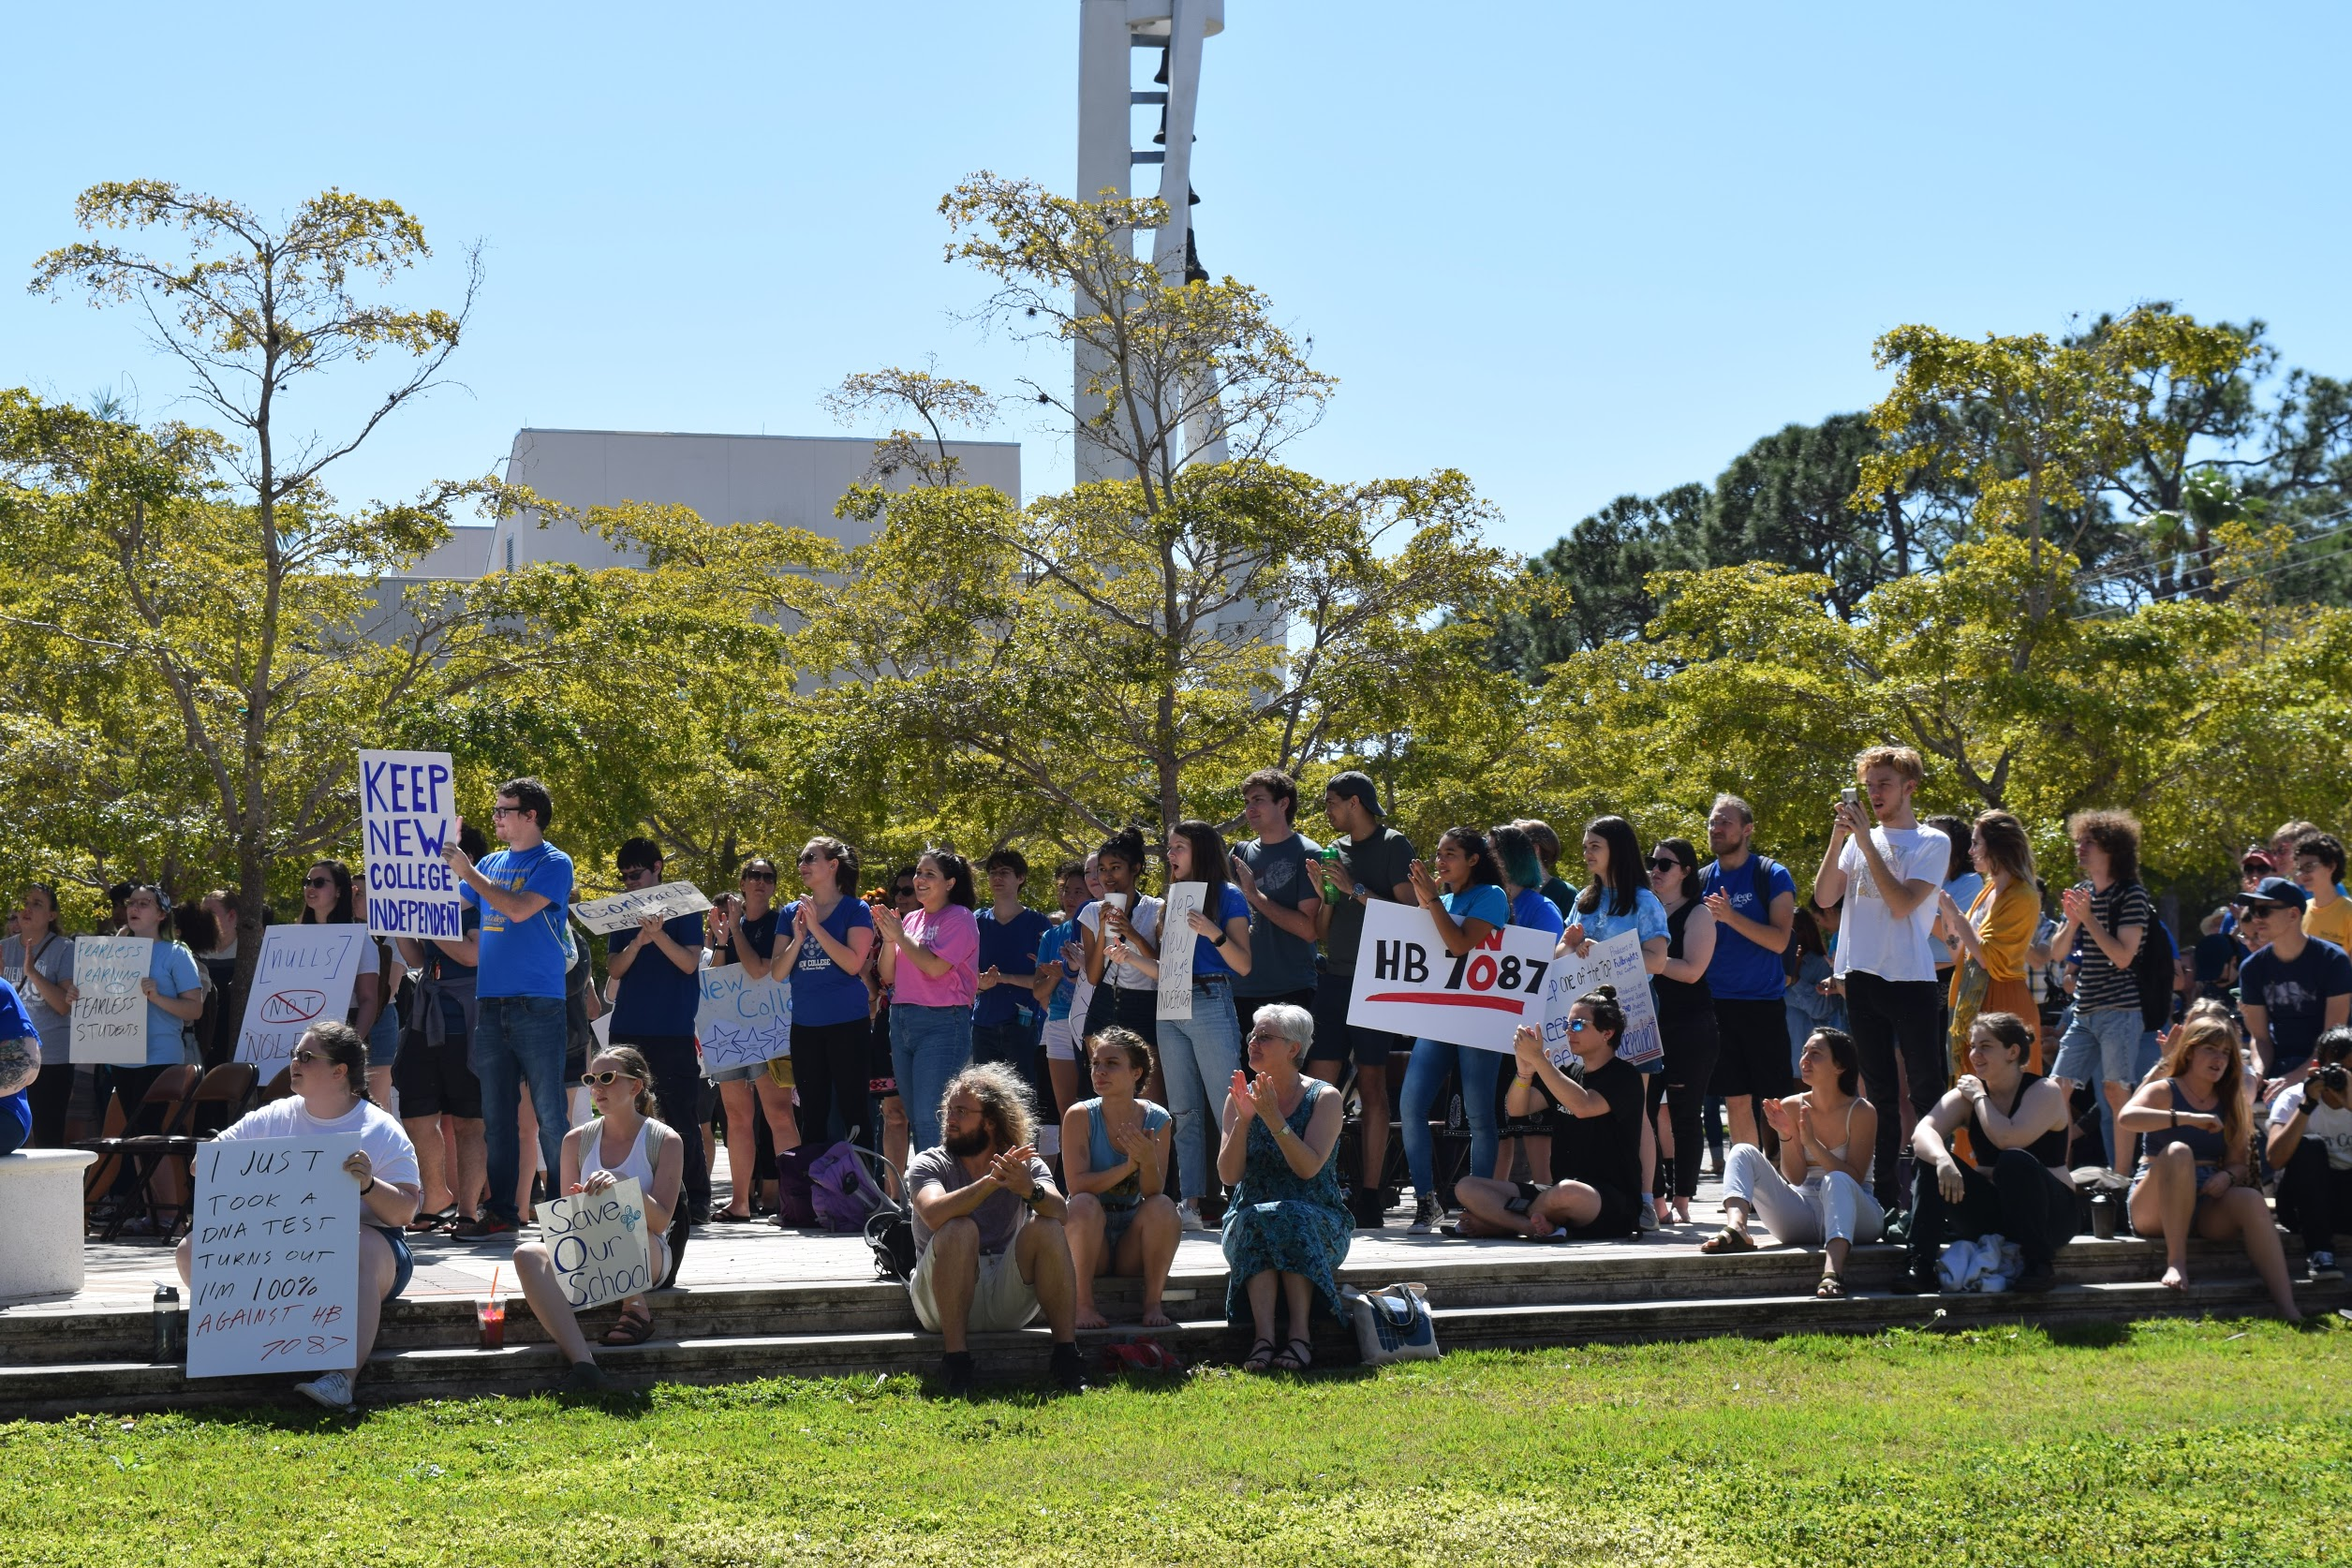 Students gather in support of New College's independence